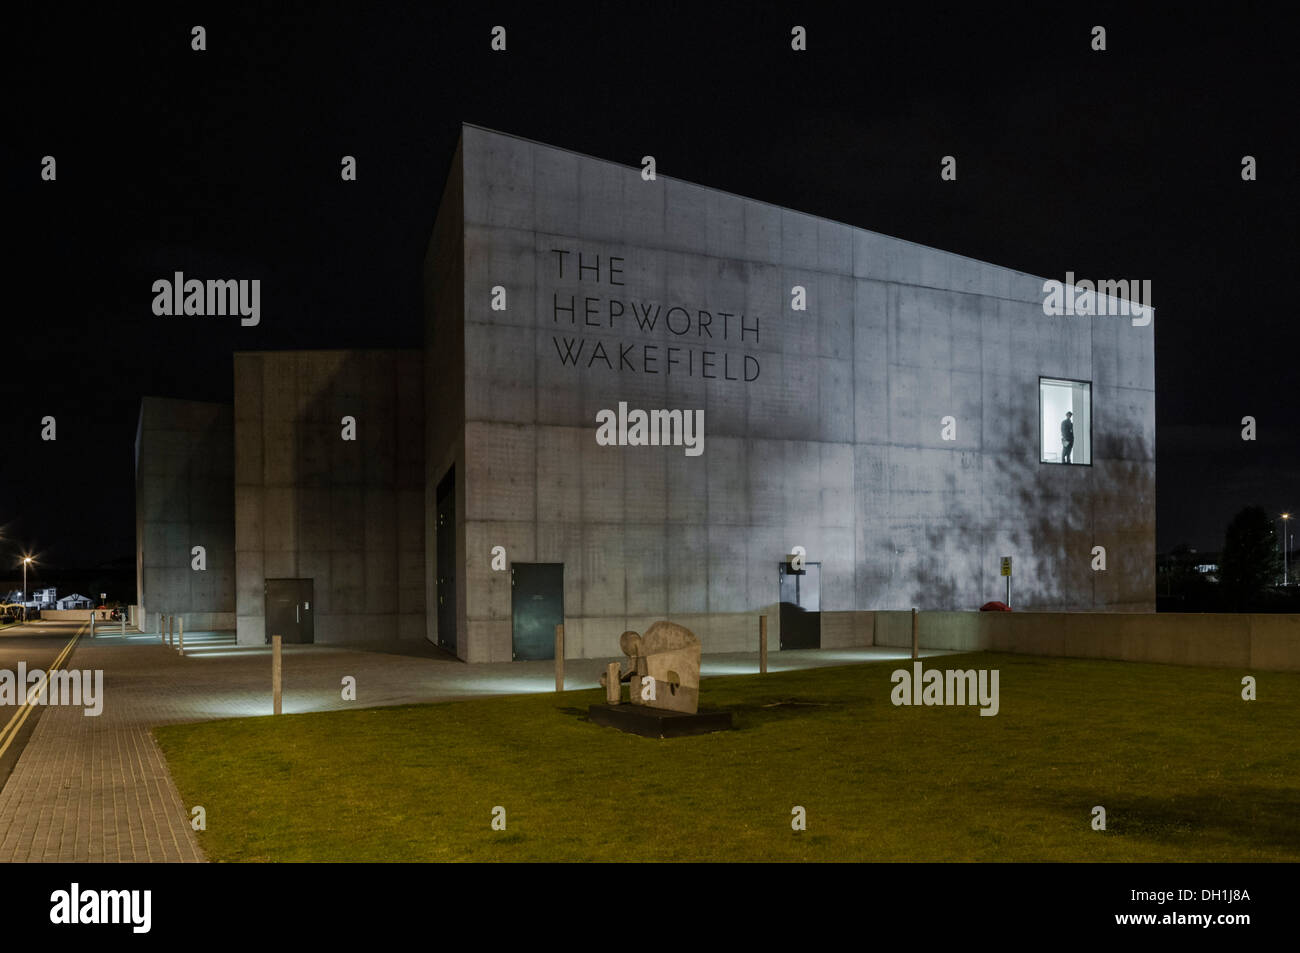 The Hepworth art gallery at night by David Chipperfield. West Yorkshire, England. PHILLIP ROBERTS - Stock Image